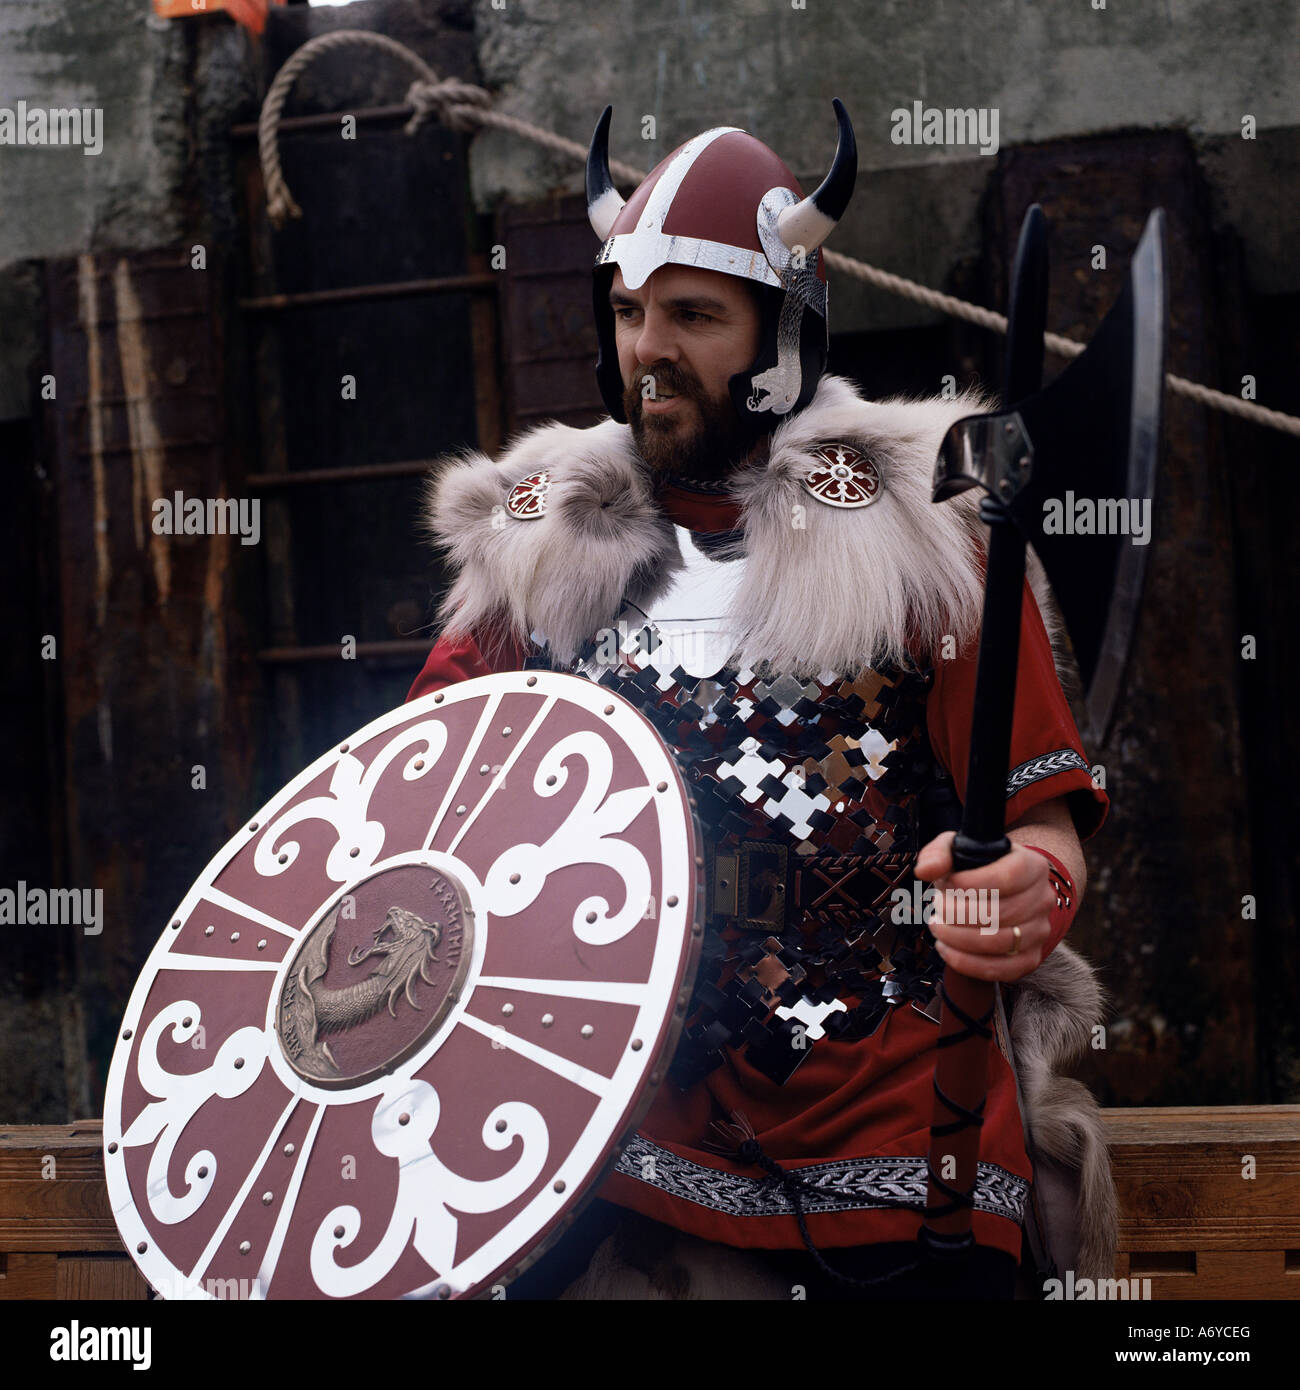 Man in costume Viking Gothic revival Shetlands Scotland United Kingdom Europe - Stock Image